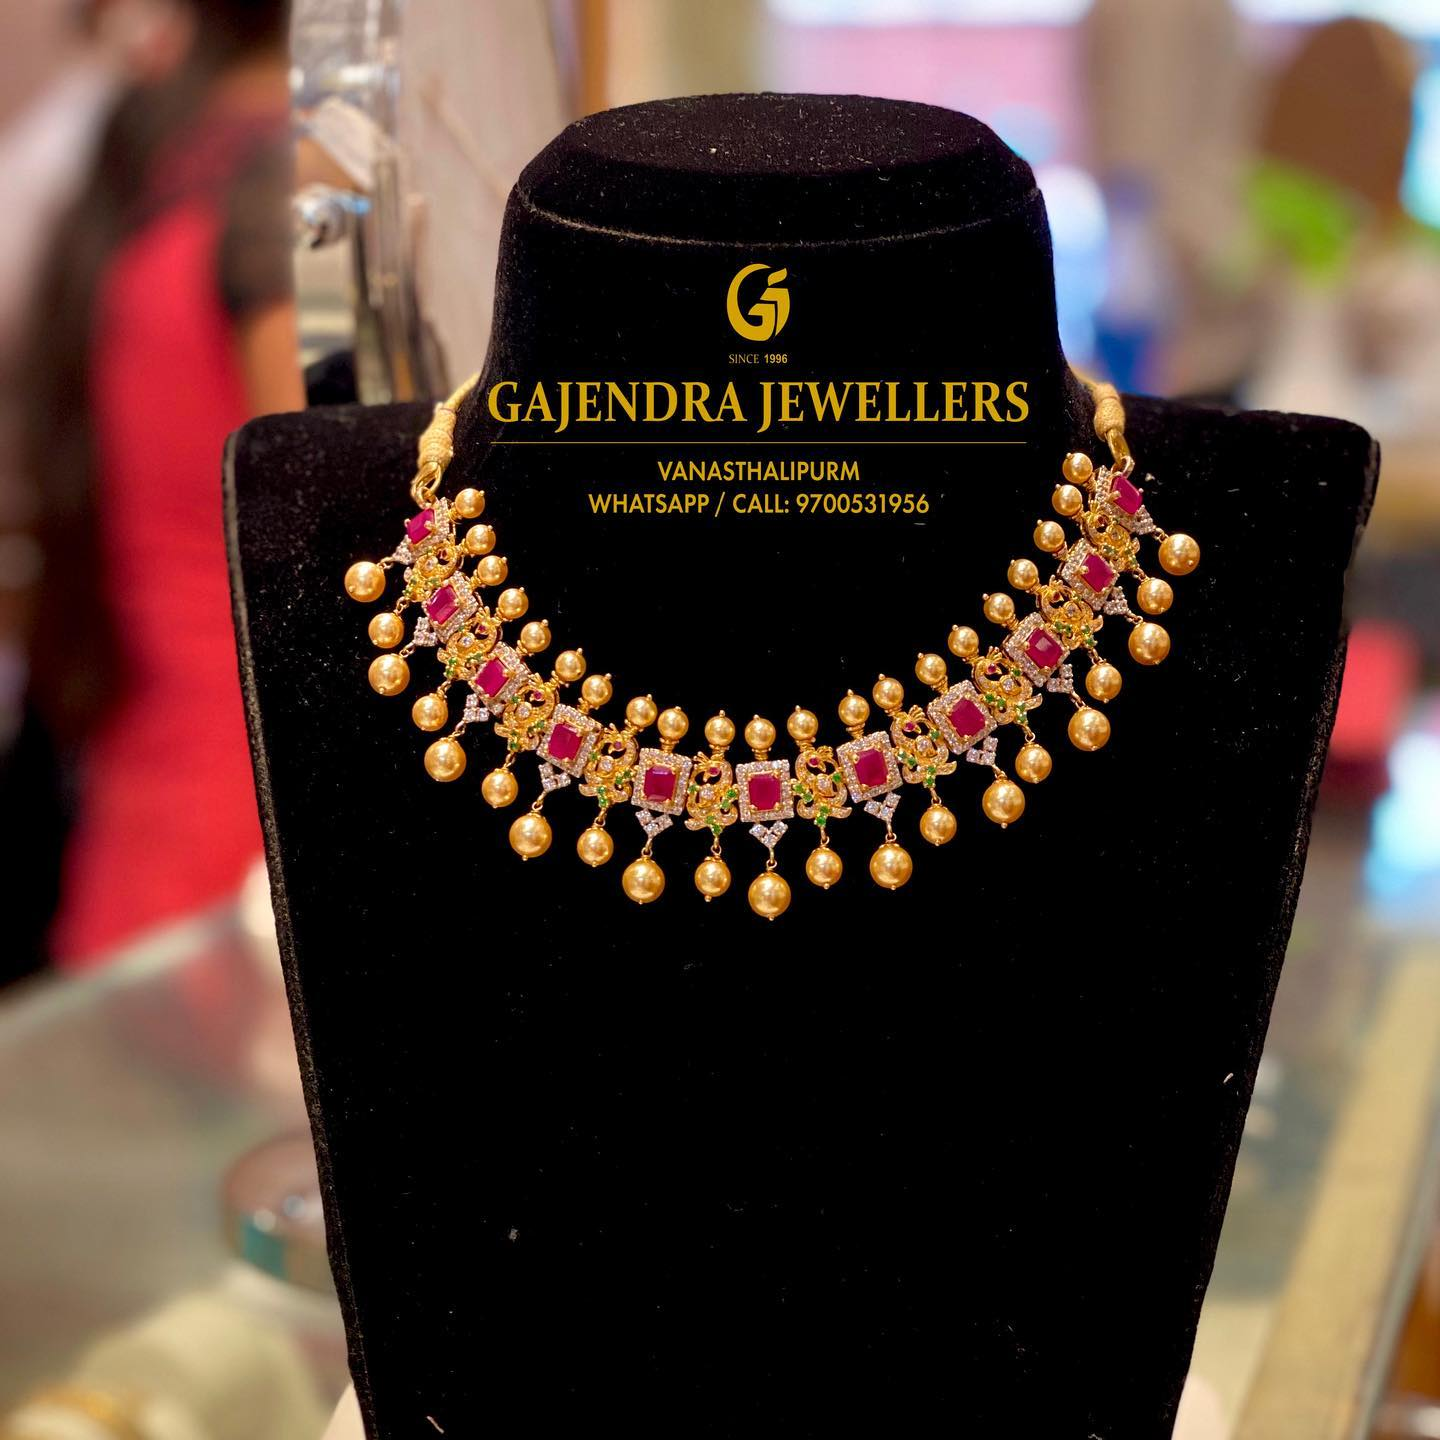 Stunning 22k gold necklace studded with multi precious stones. Necklace with south sea pearl hangings.  2021-01-20